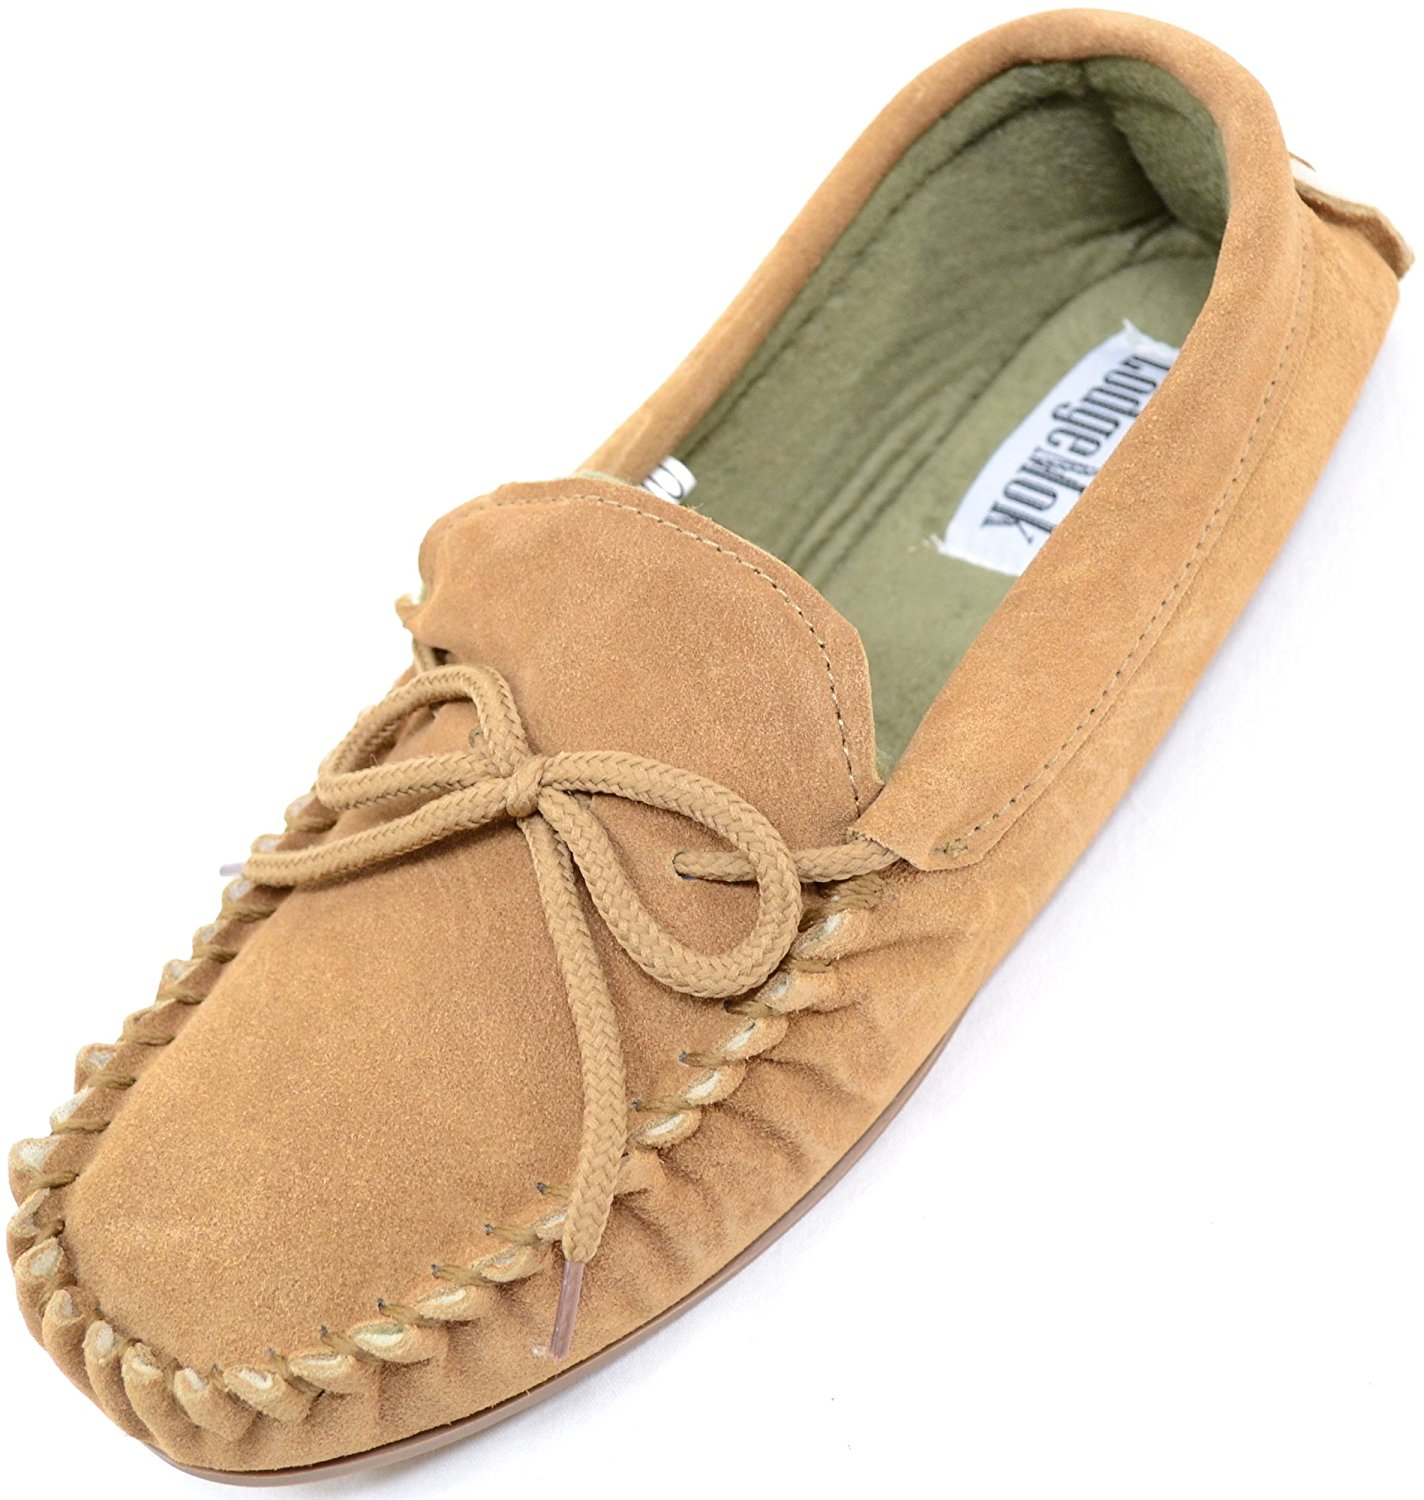 21683b09eaf Get Quotations · Mens Traditional Genuine Suede Leather Moccasin   Slippers  with Rubber Sole